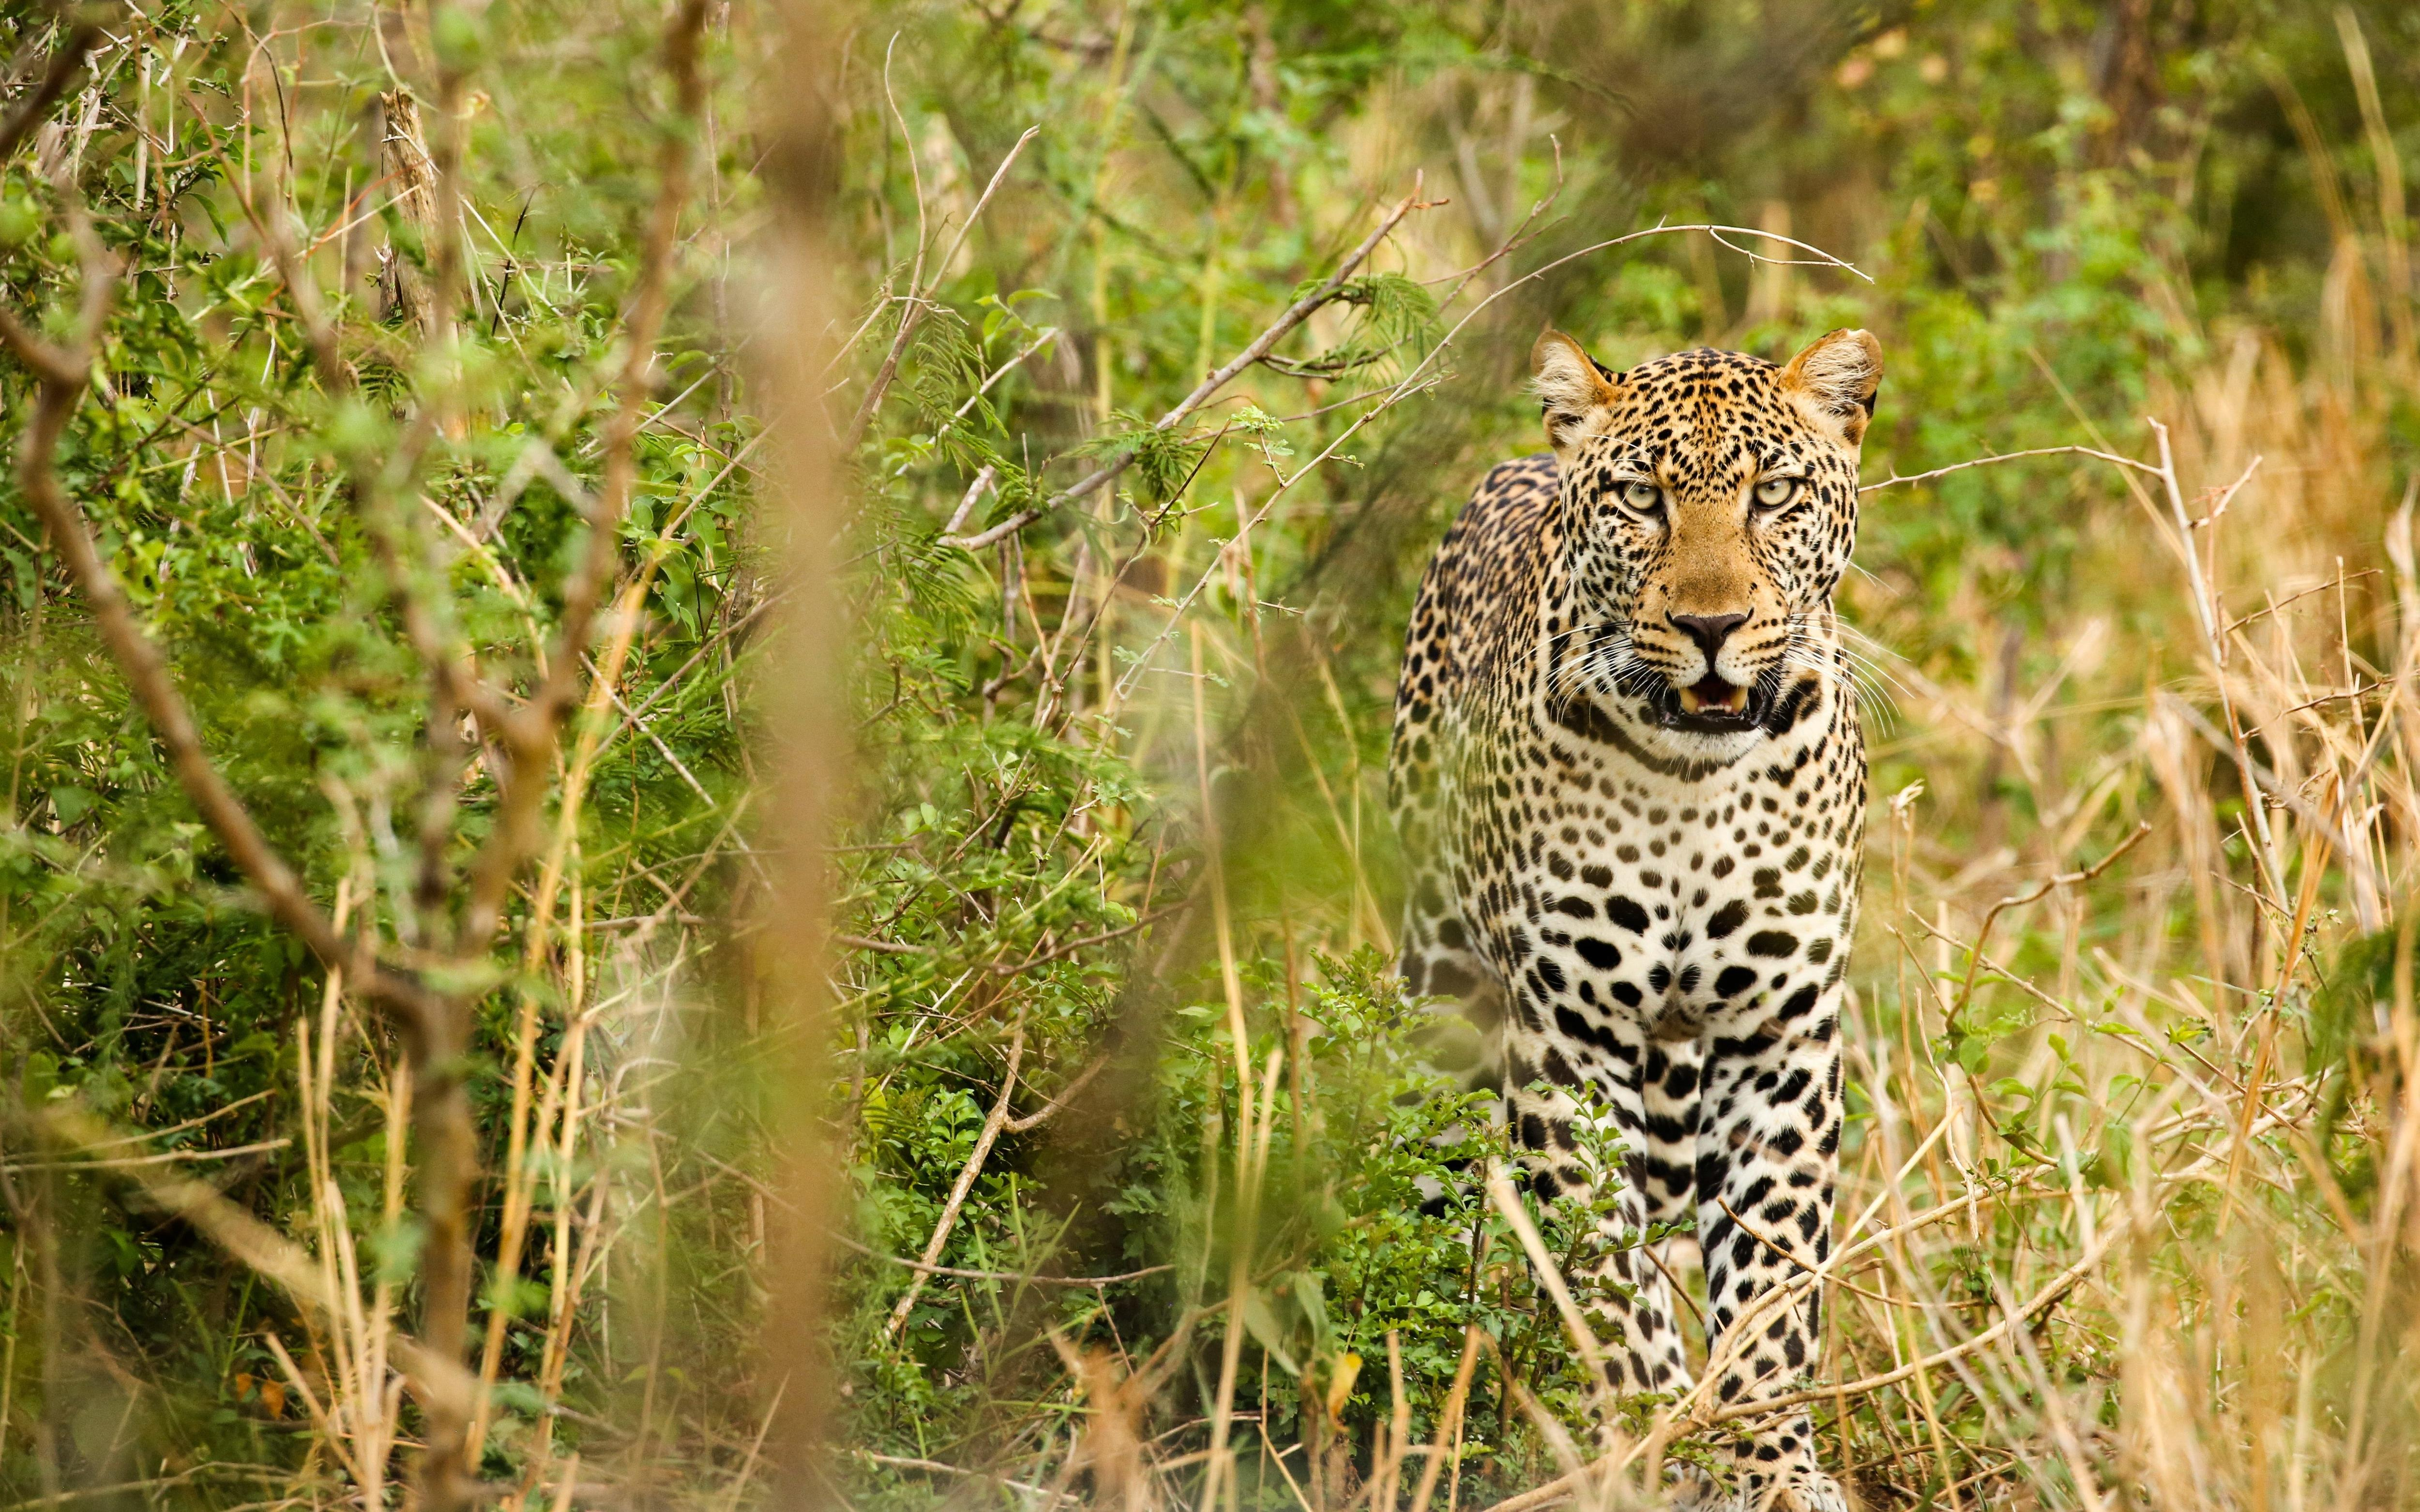 Leopard snatches and eats toddler in Ugandan national park